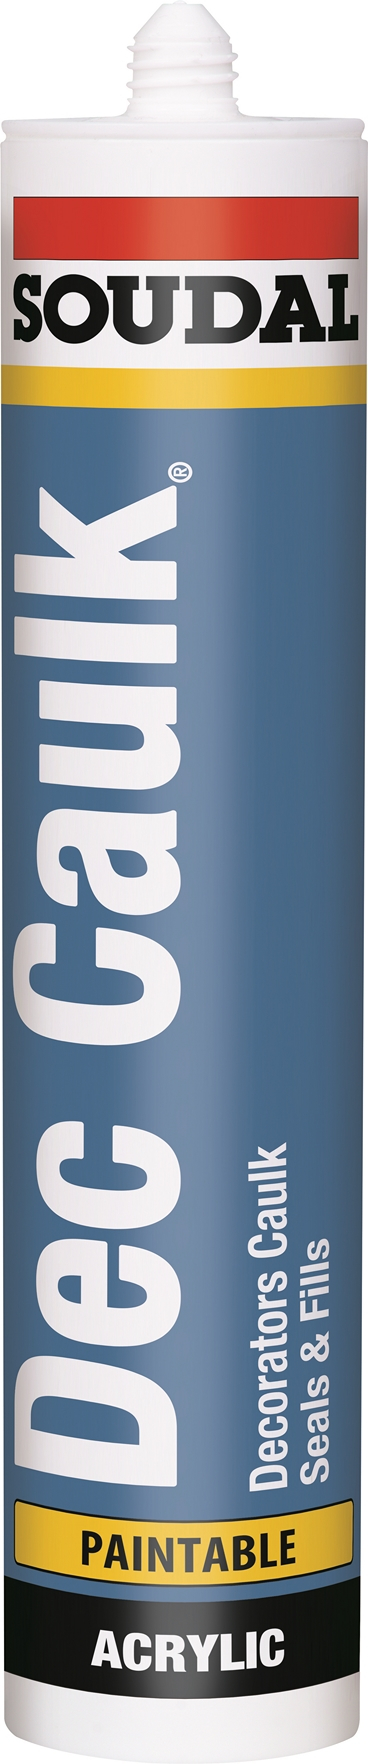 Decorators Caulk 310ml